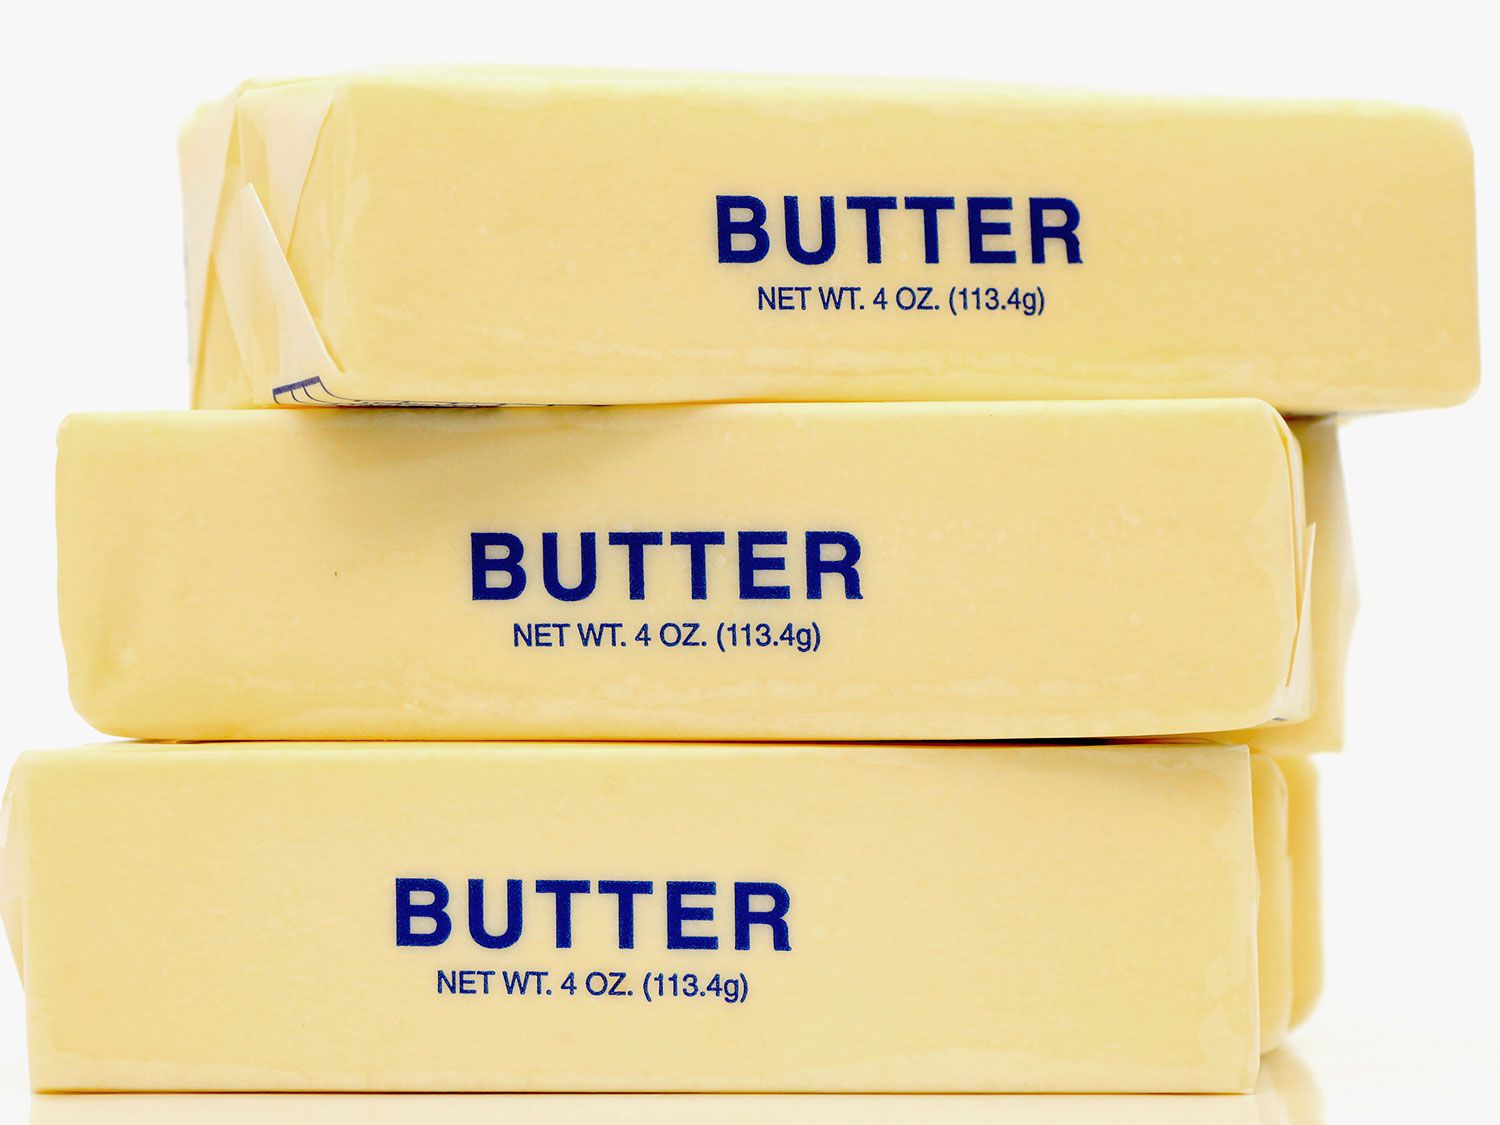 A stack of three sticks of butter in their wrappers.